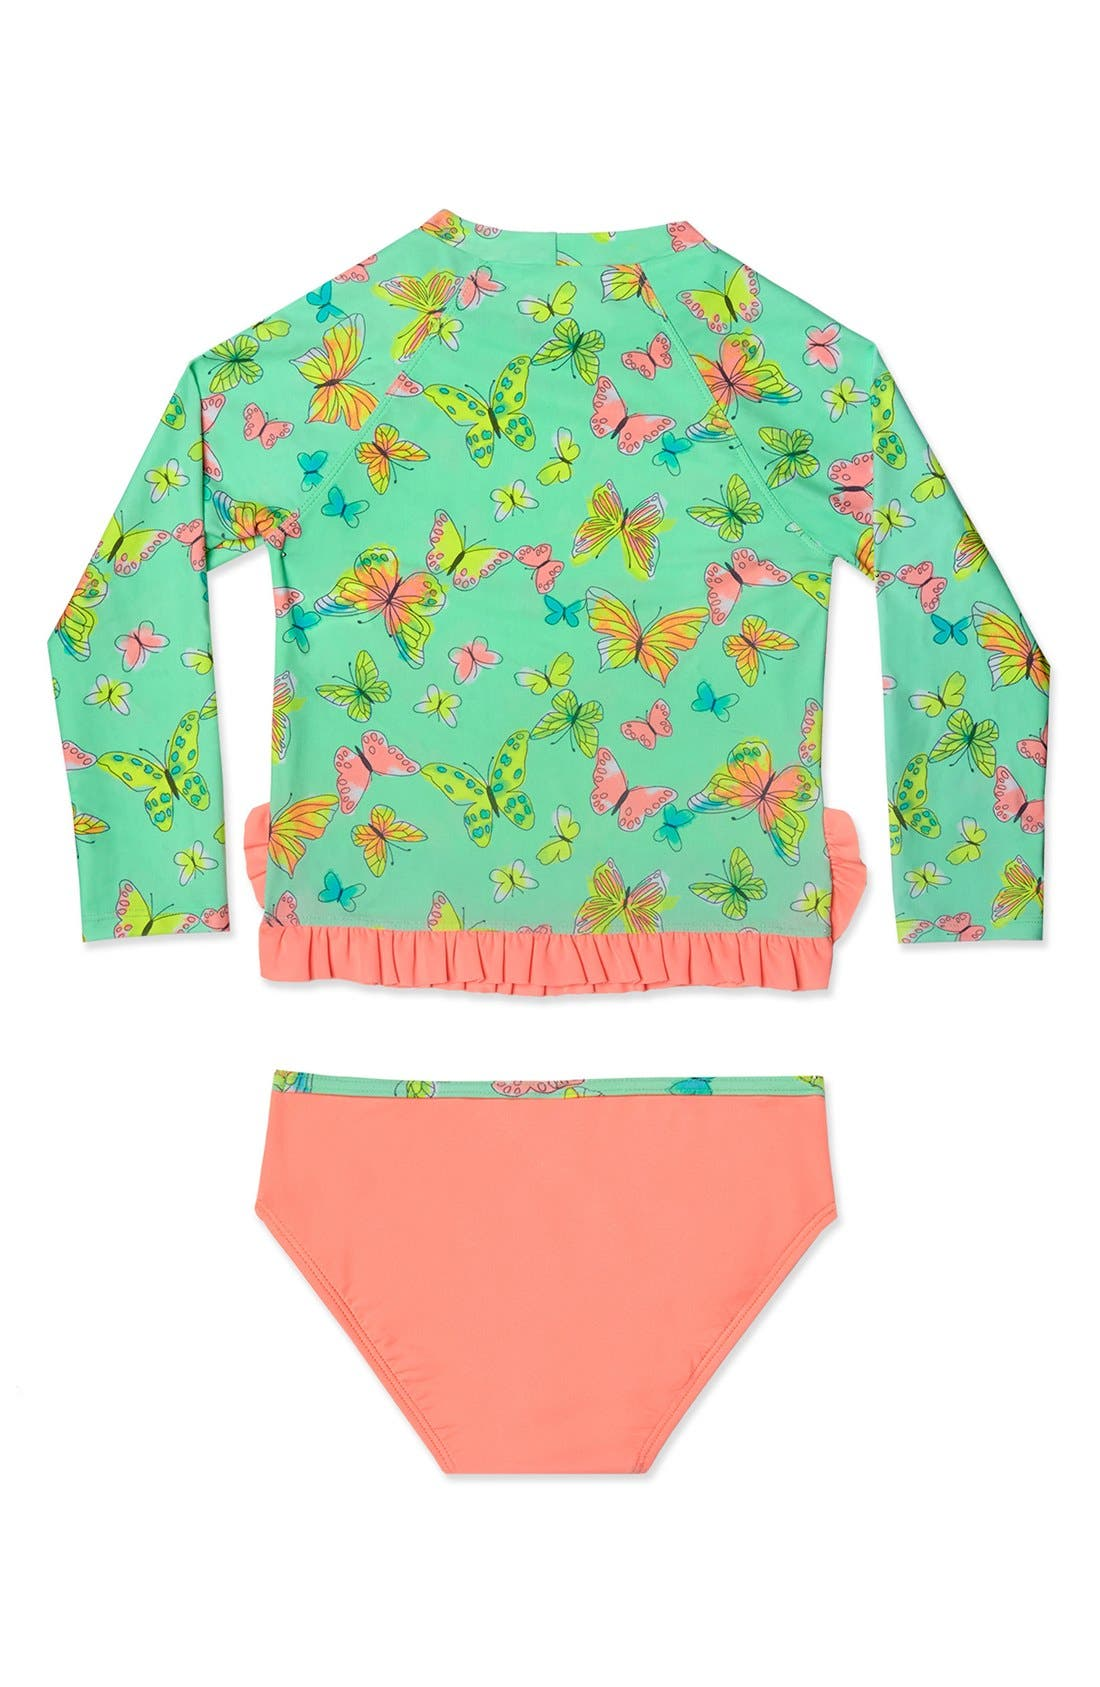 'Butterfly' Two-Piece Rashguard Swimsuit,                             Alternate thumbnail 2, color,